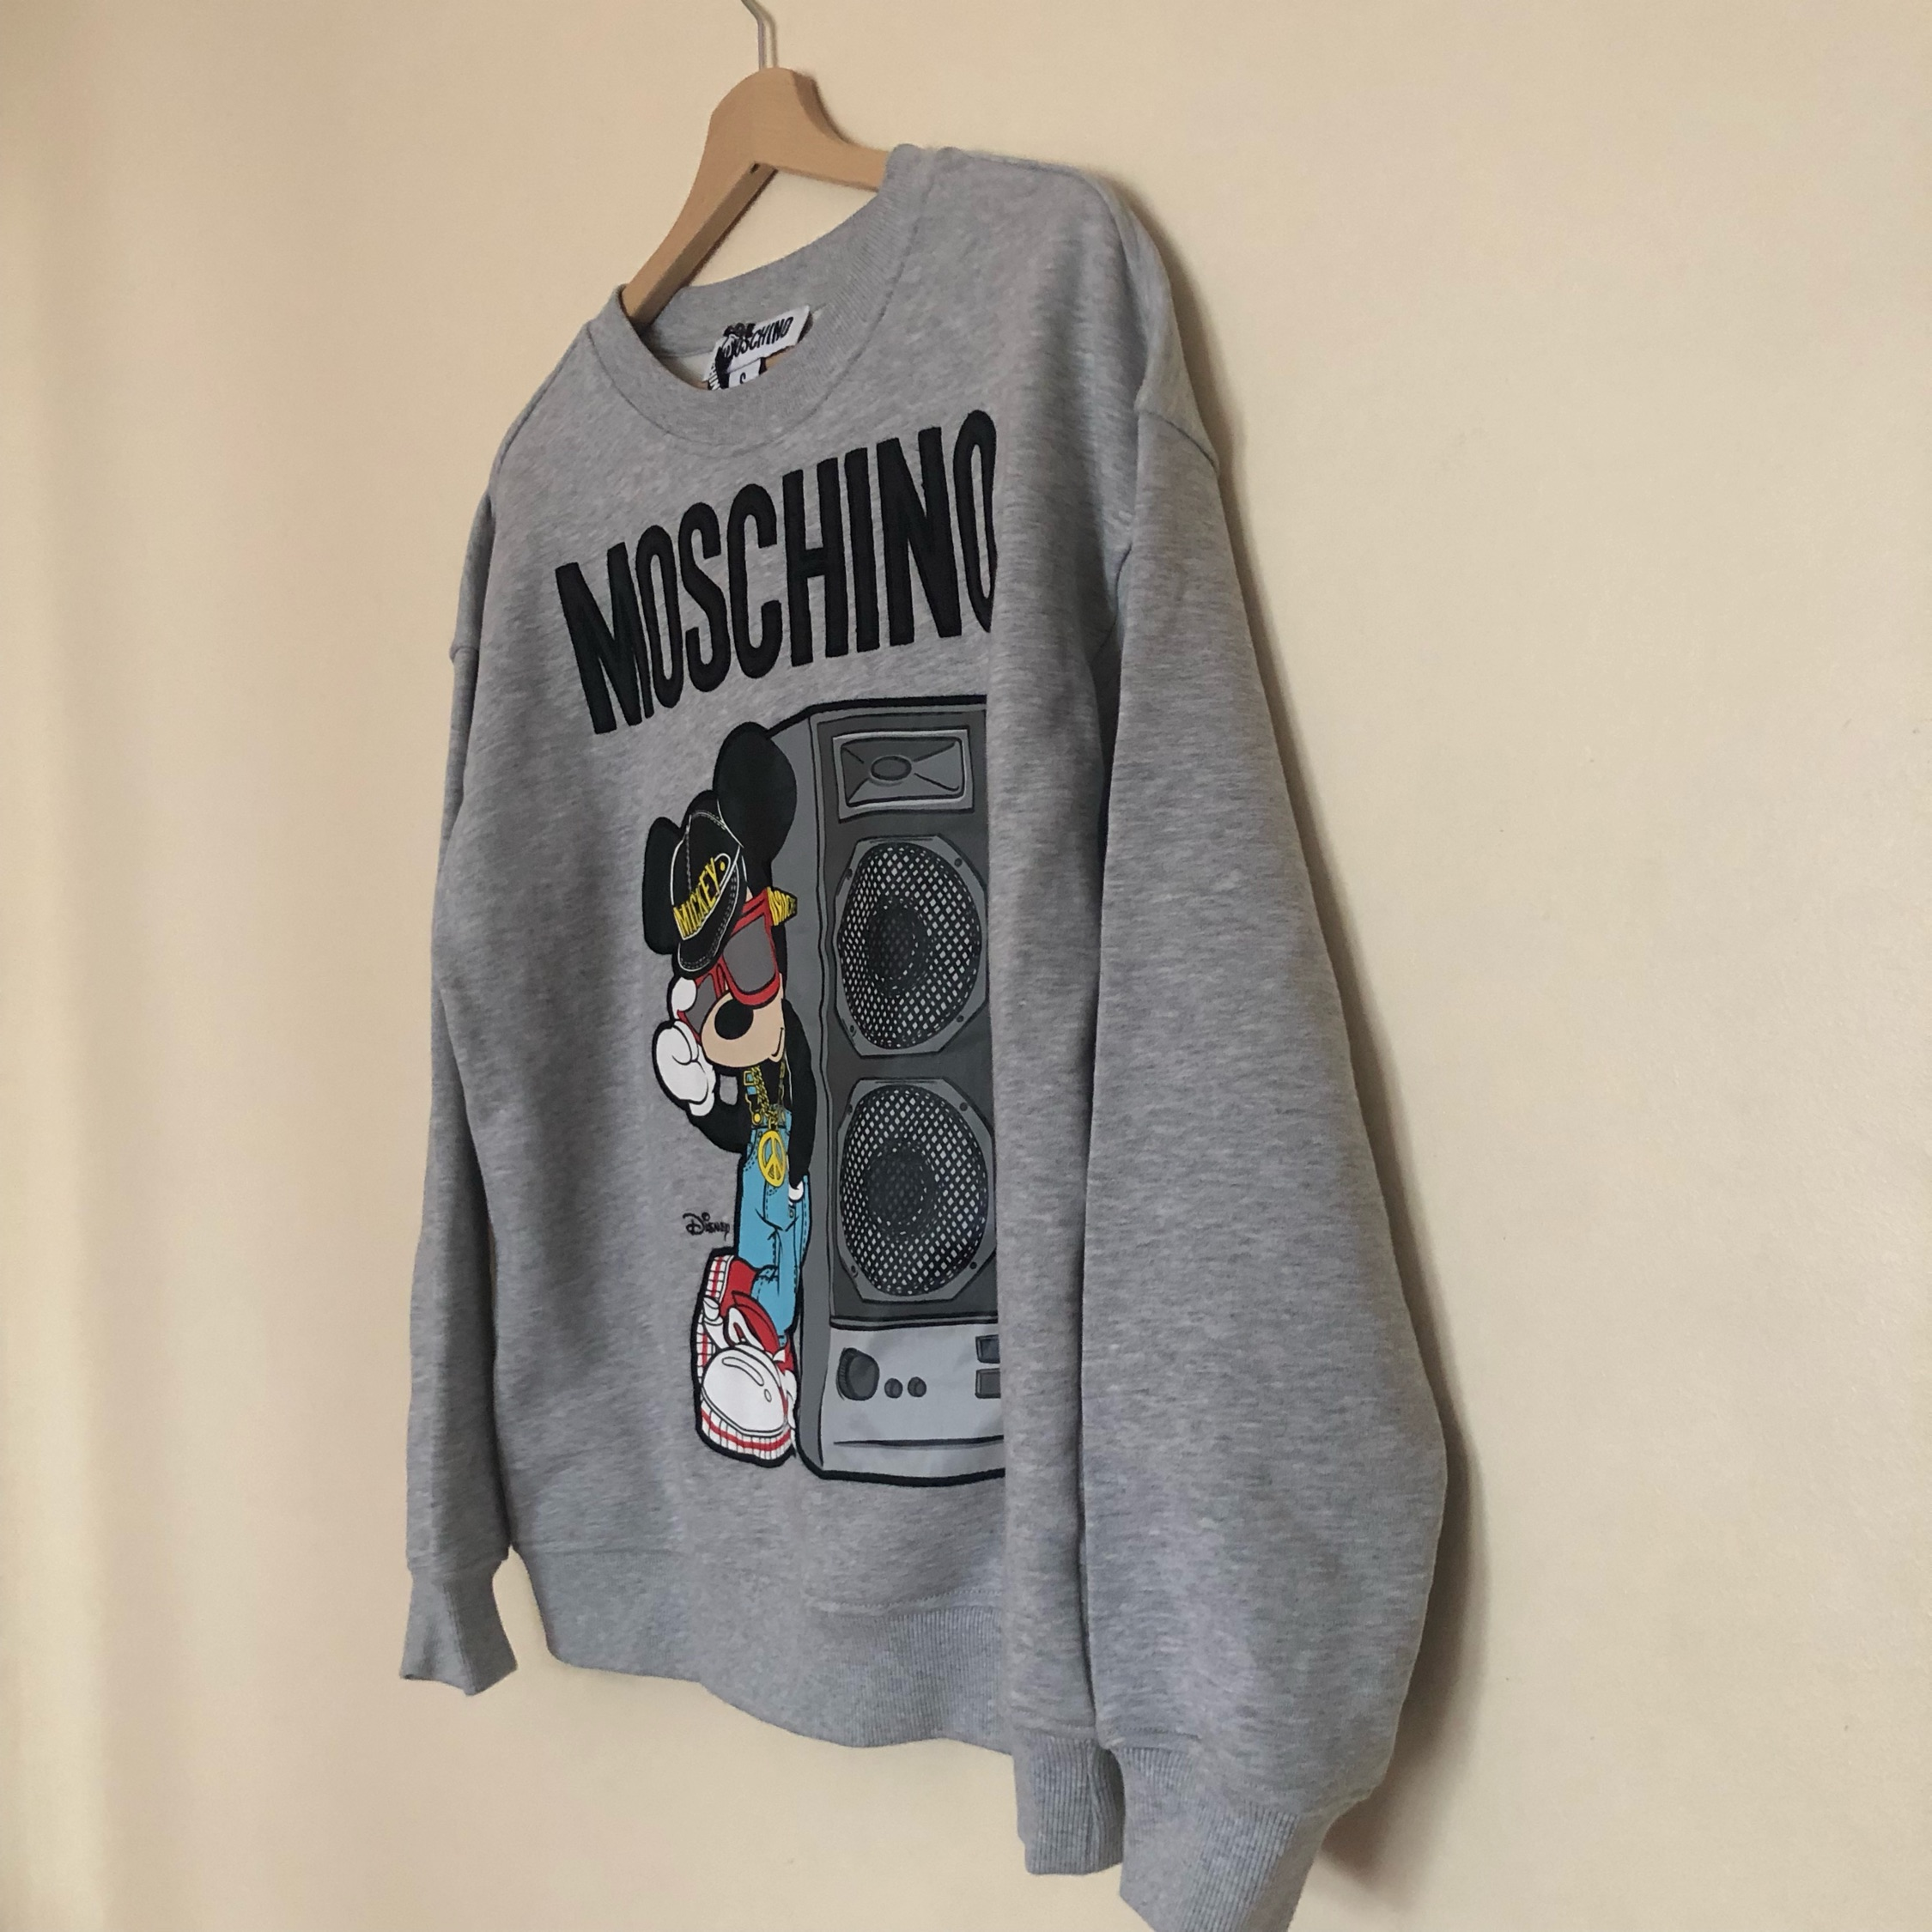 Moschino/H&M - Mickey Mouse Jumper